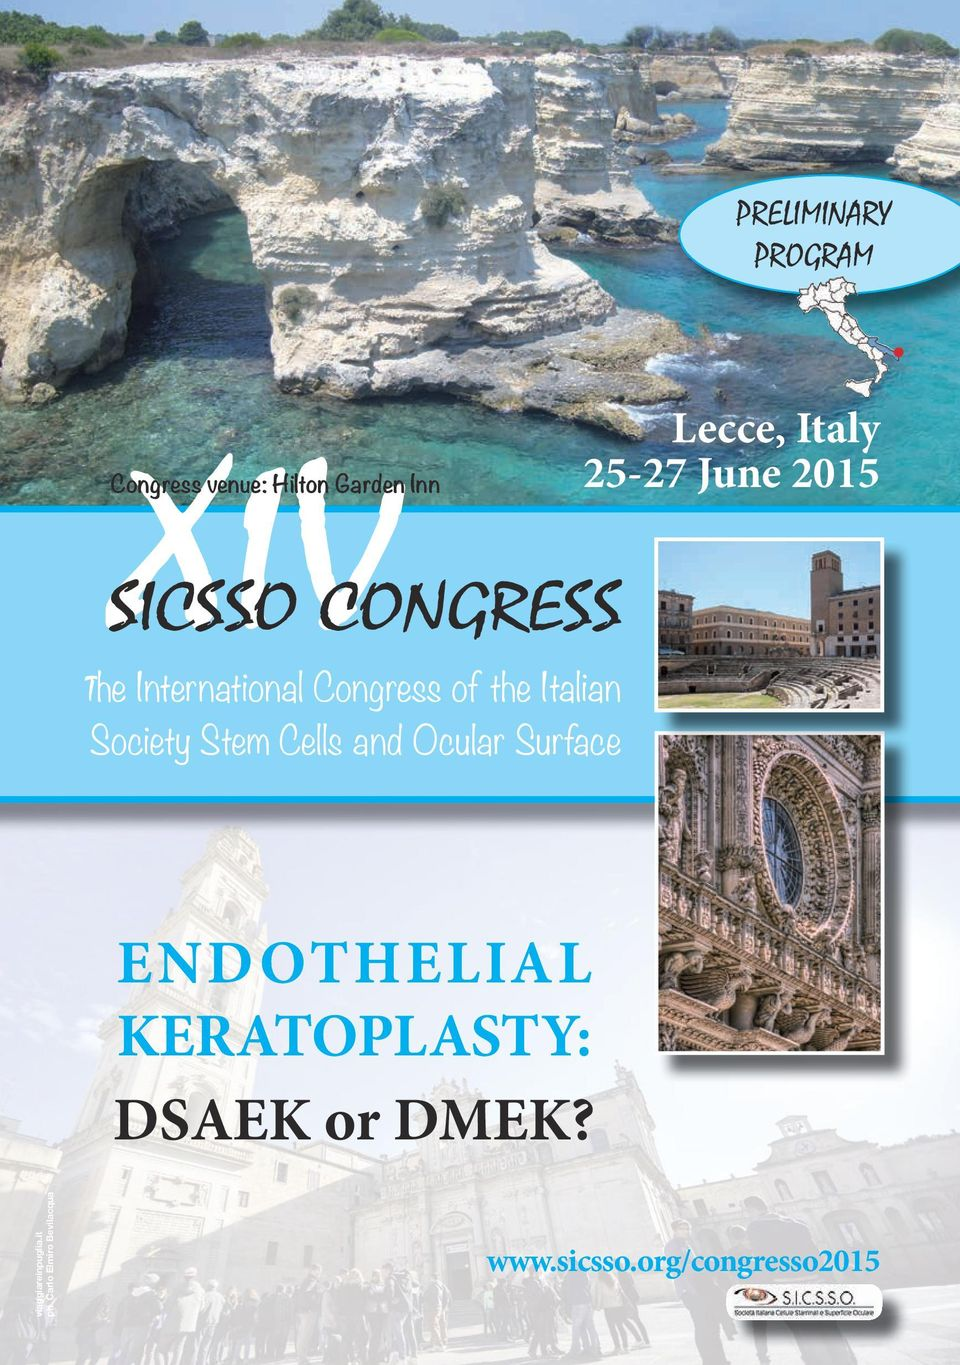 Surface Lecce, Italy 25-27 June 2015 ENDOTHELIAL KERATOPLASTY: DSAEK or